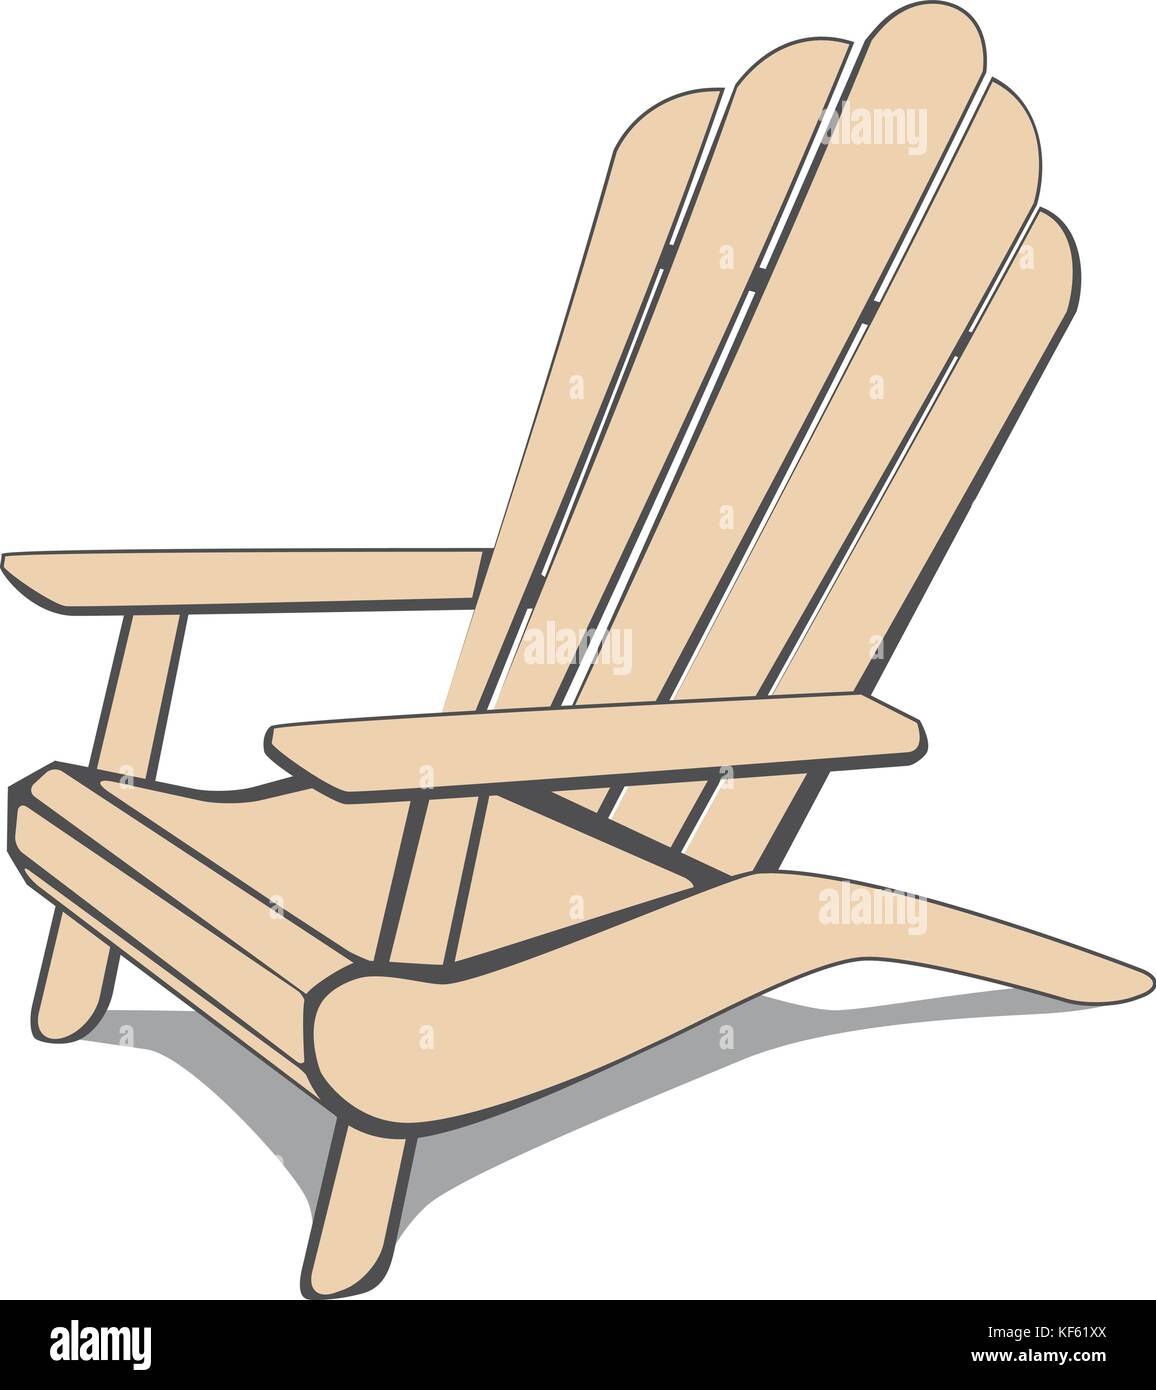 Adirondack Chair Stock Vector Images - Alamy